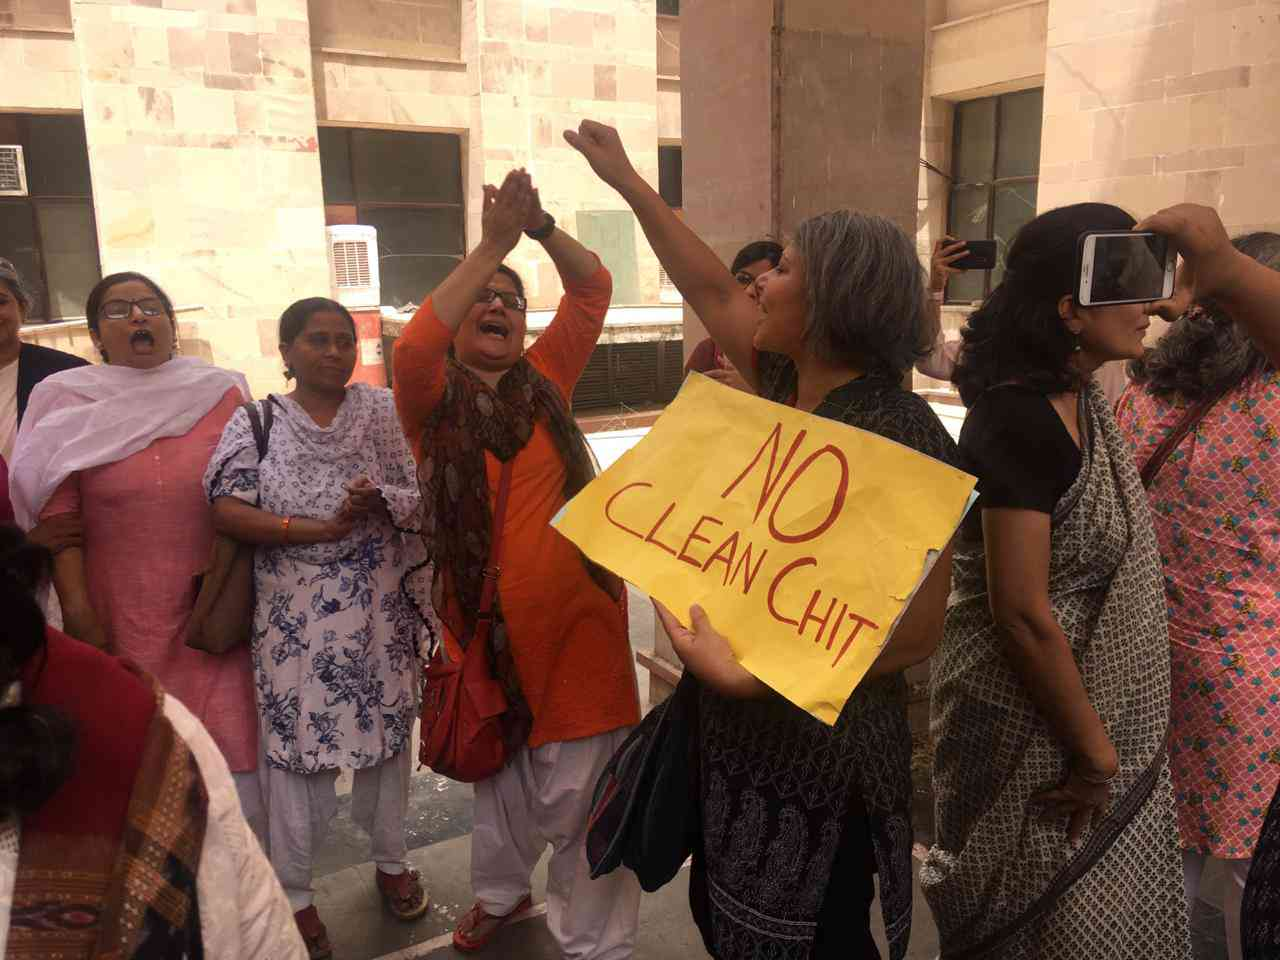 Inside the police station, women raised slogans against the inquiry committee's findings.